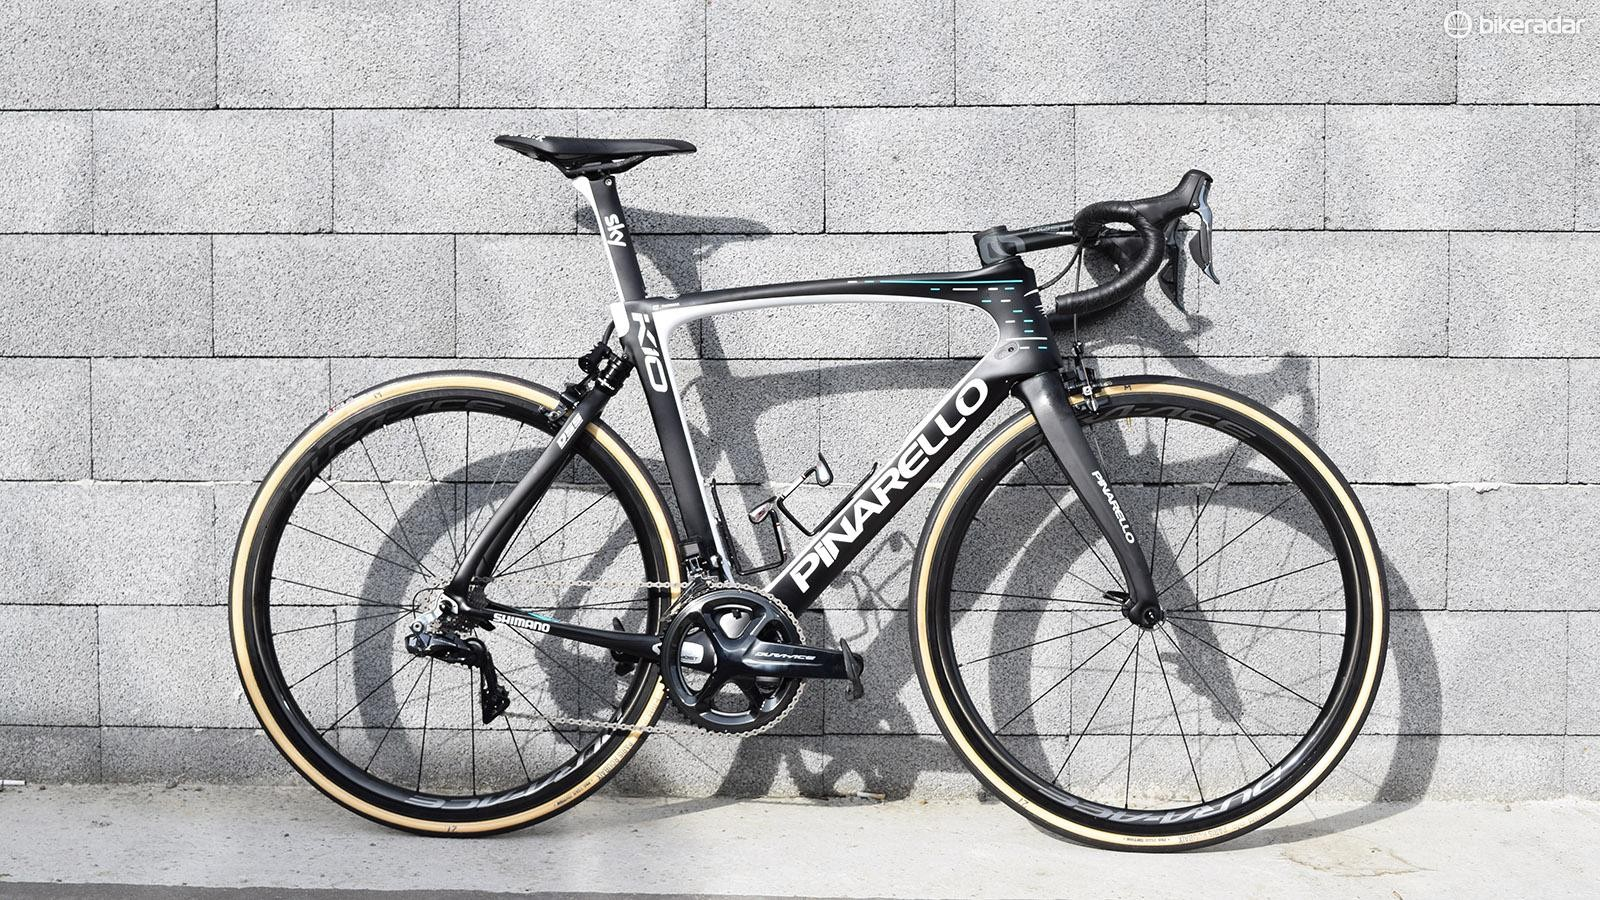 Geraint Thomas' Pinarello Dogma K10 for the 2018 Paris-Roubaix